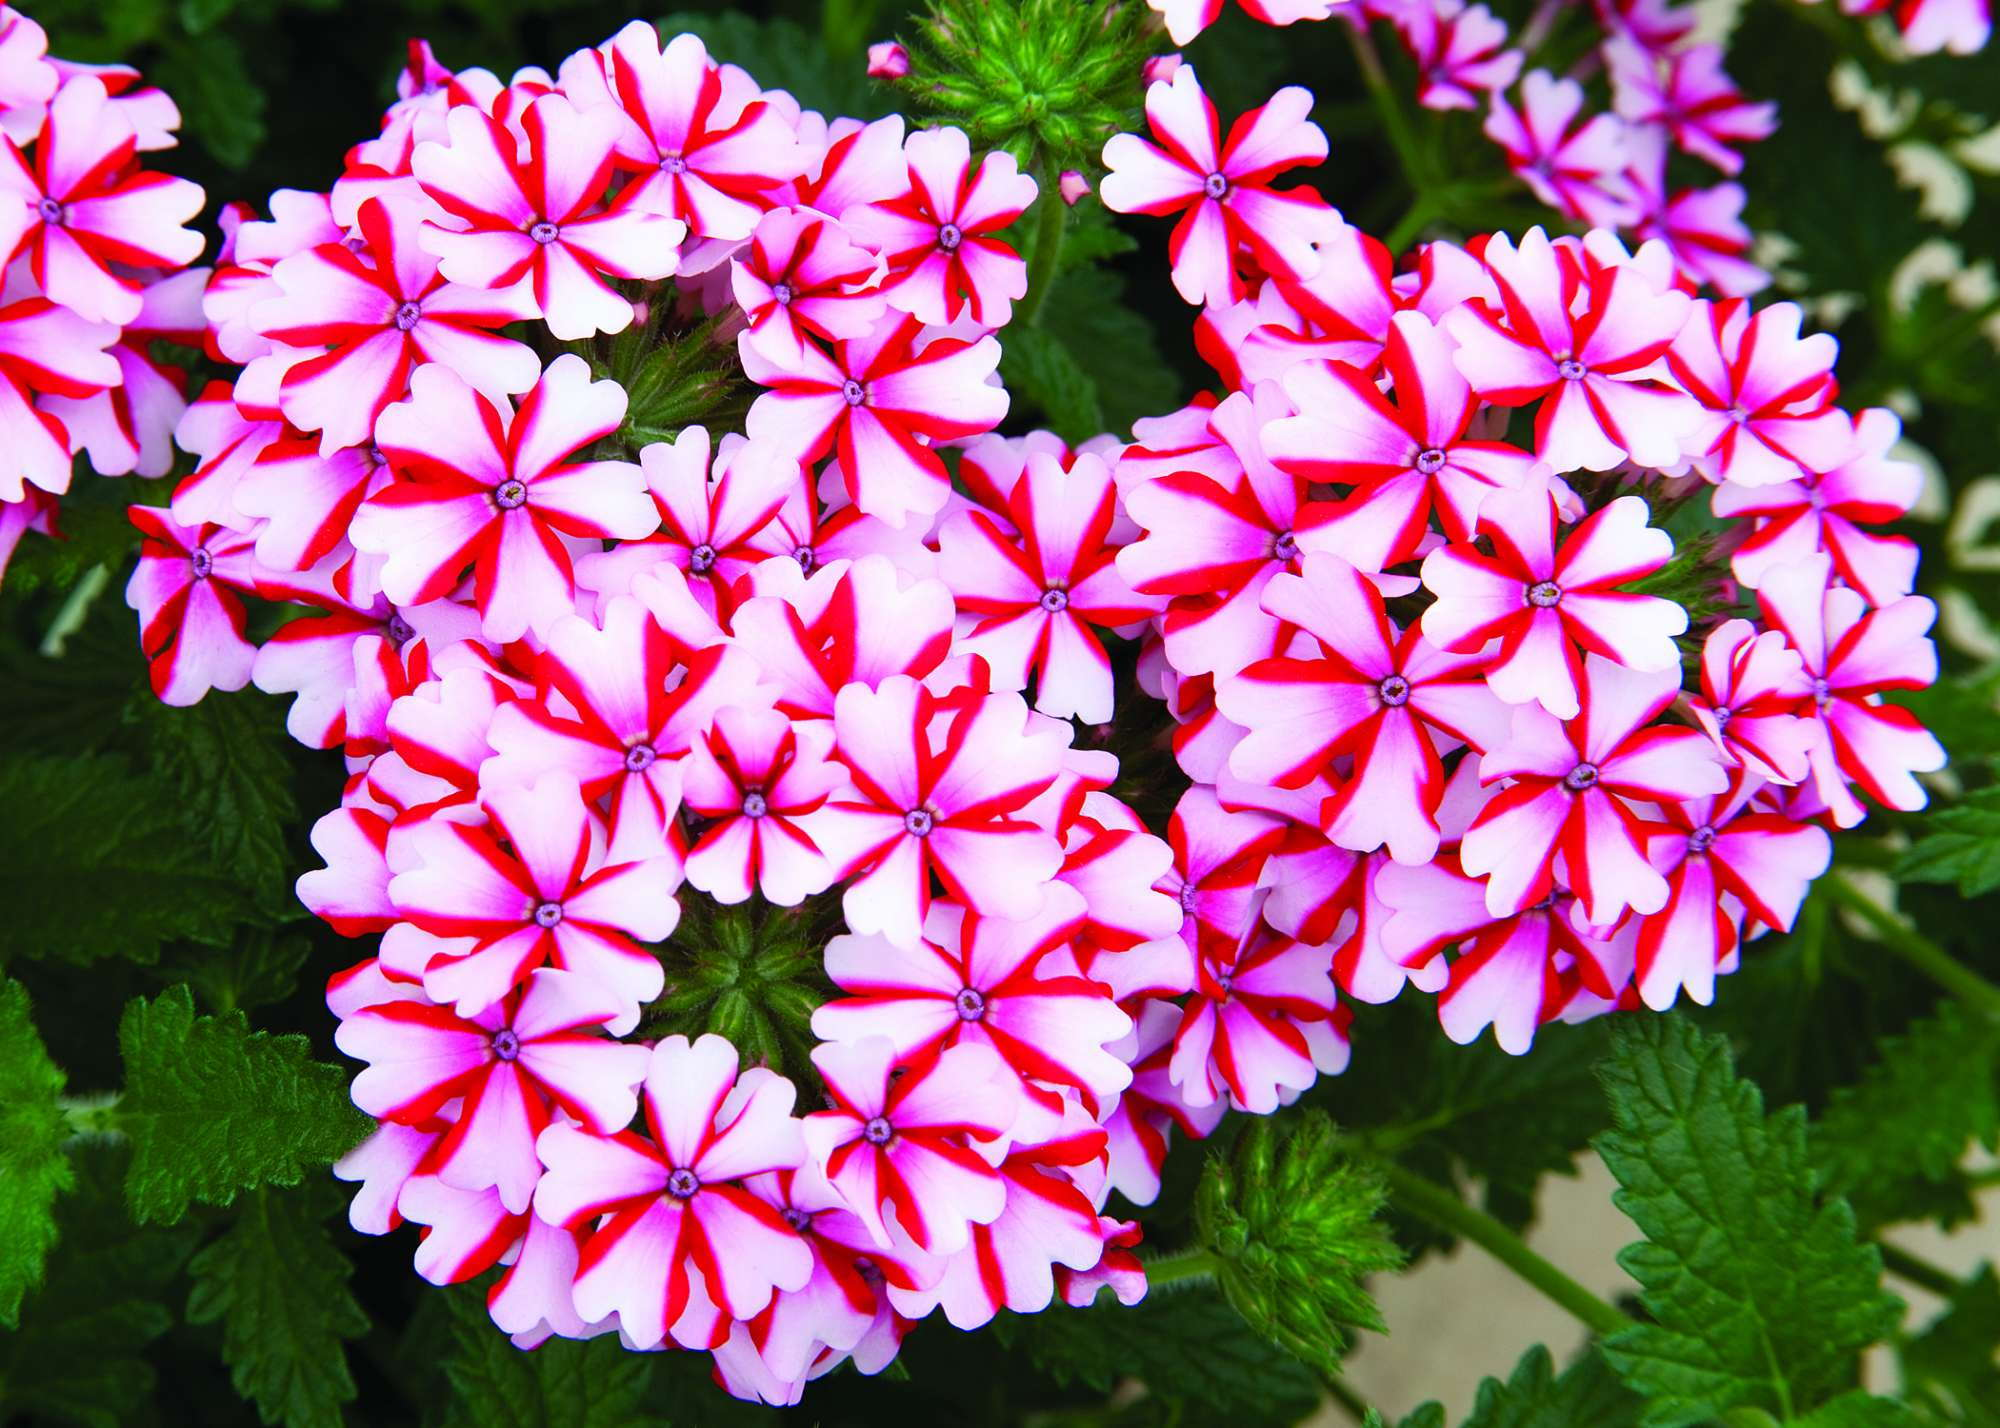 Verbena 'Lanai Candy Cane' Is A Medal Of Excellence Nominee